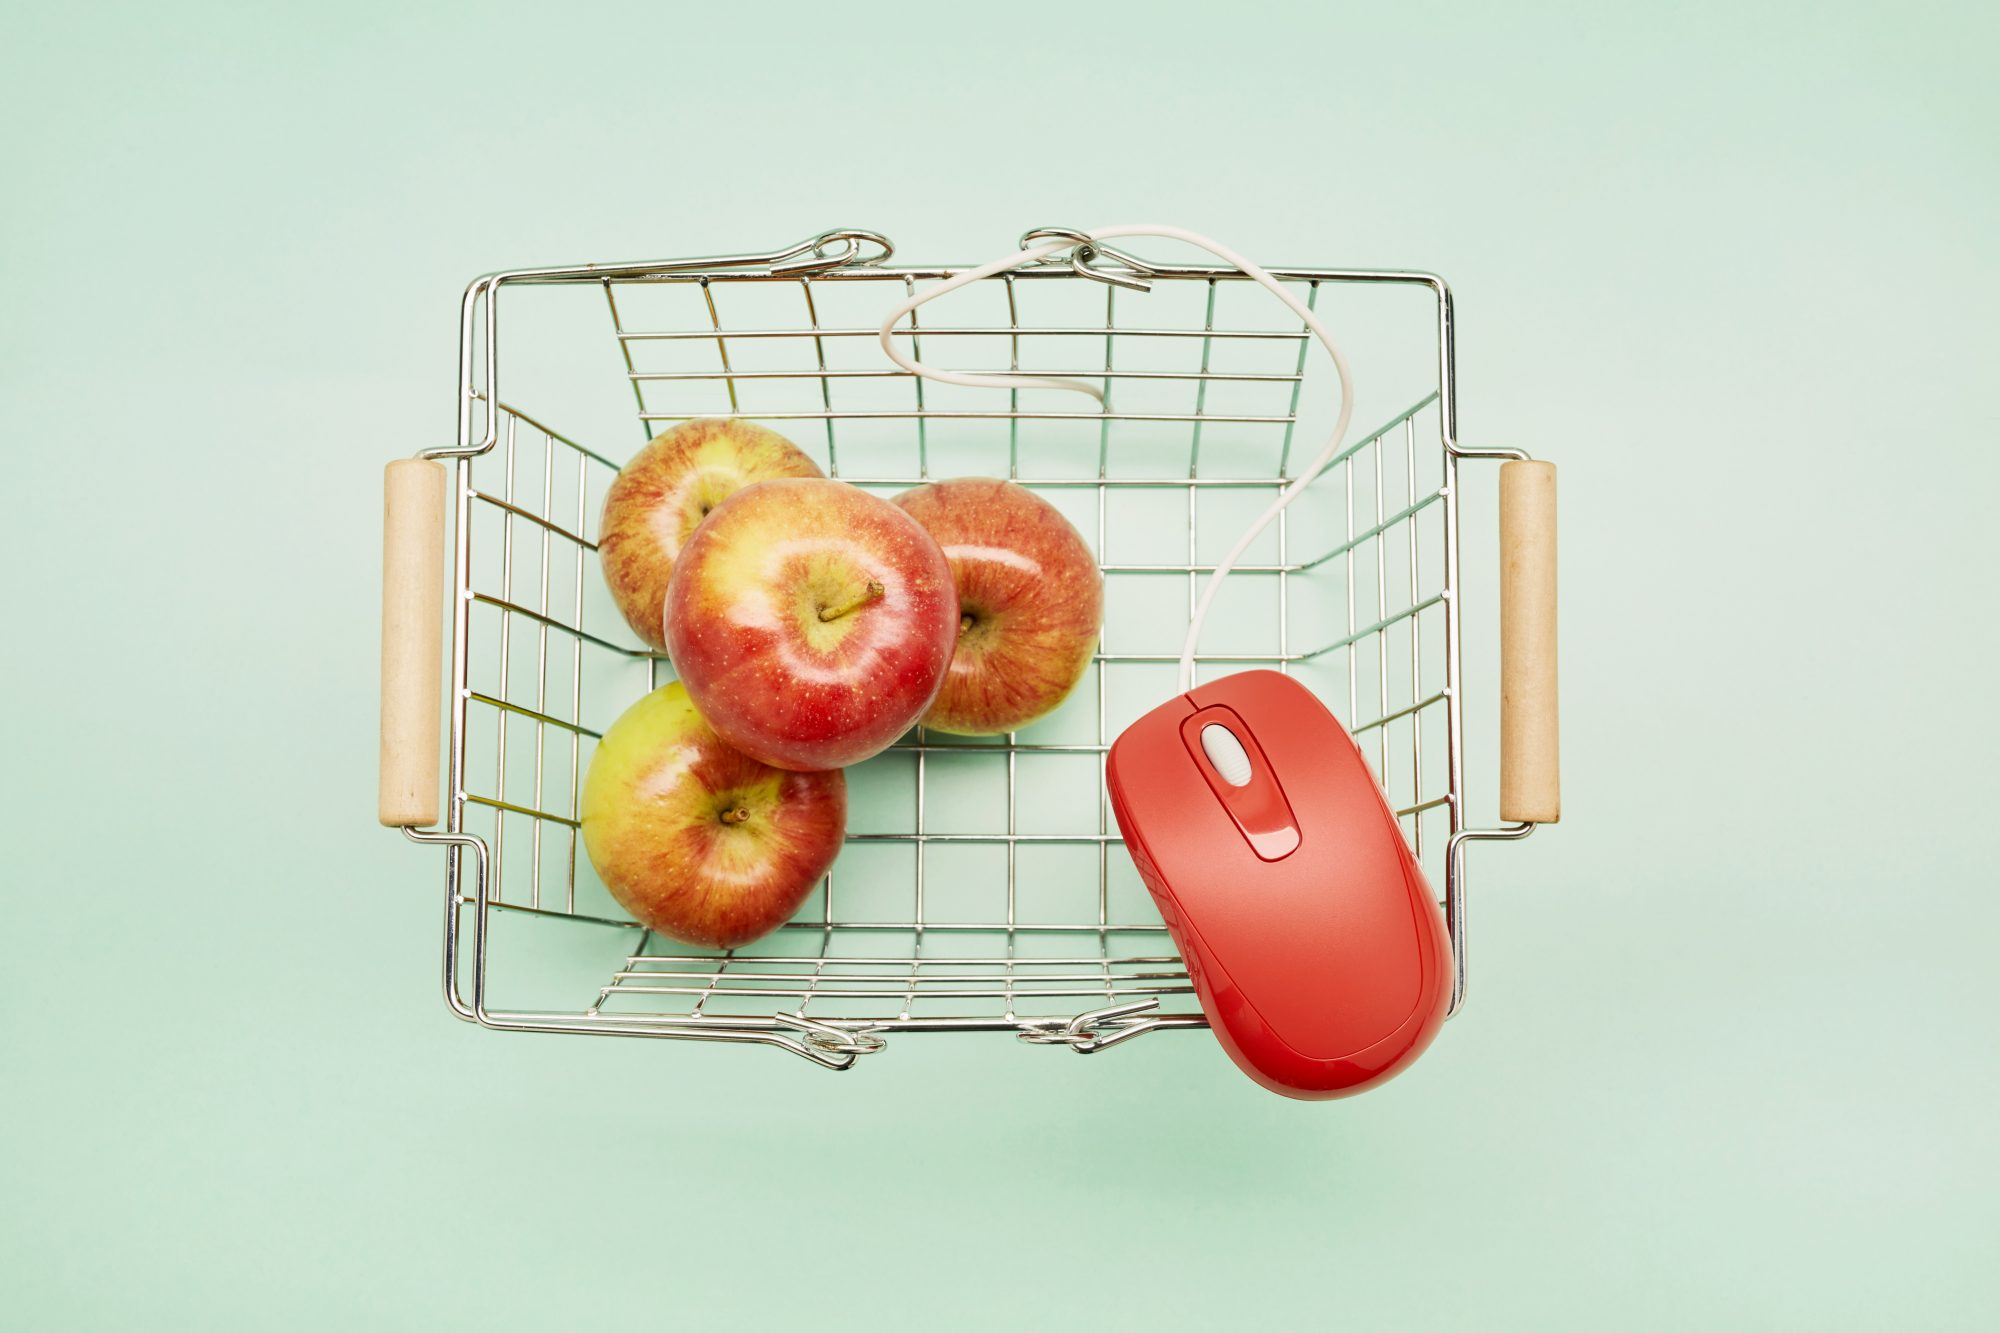 Directly above shot of a shopping basket, apples and red computer mouse on turquoise background